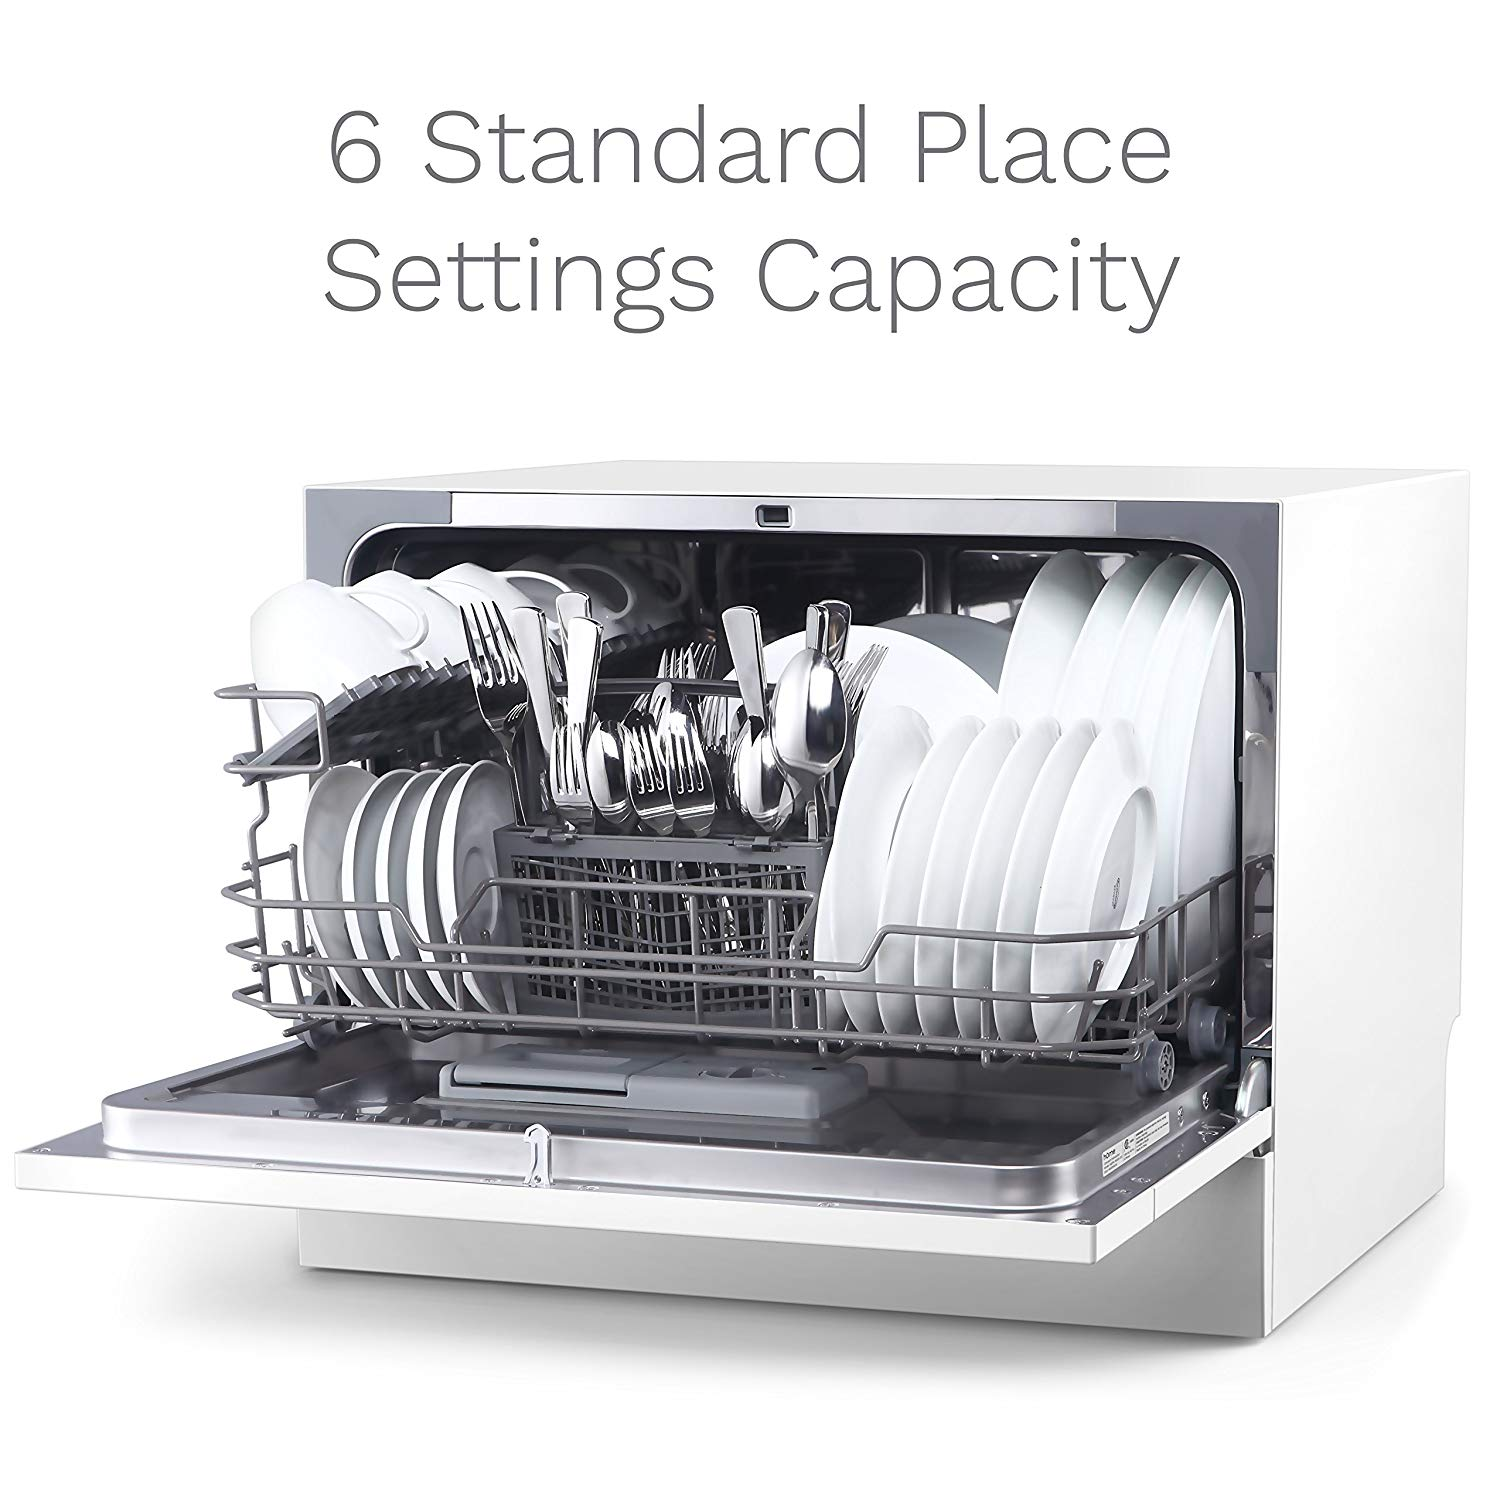 Review of hOmeLabs Compact Countertop Dishwasher - Energy Star Portable Mini Dish Washer